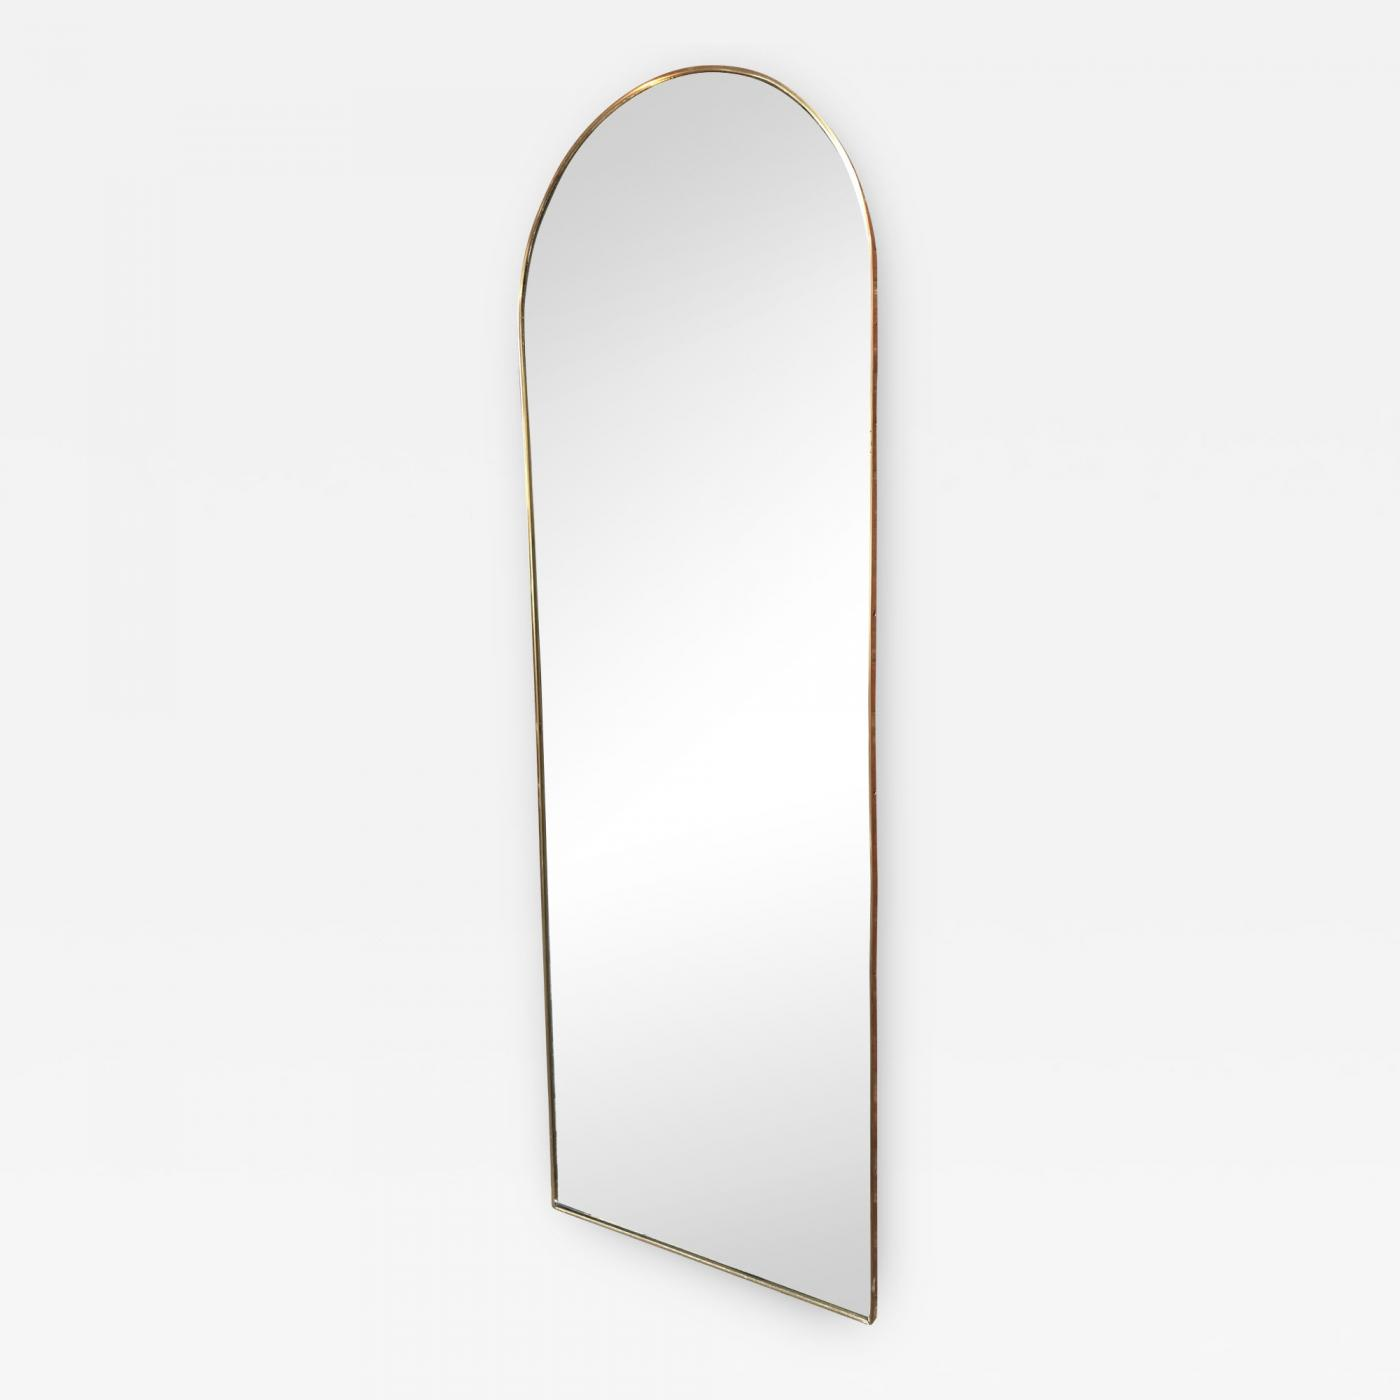 Italian Vintage Arched Shaped Brass Wall Mirror 1950s